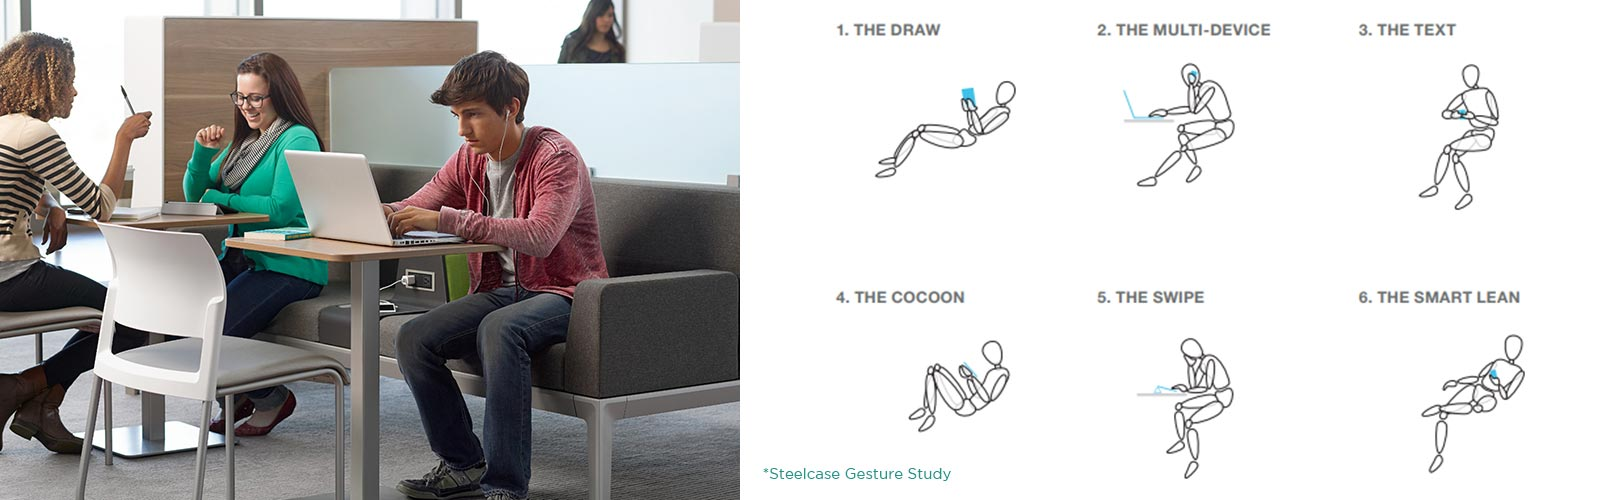 Steelcase Global Posture stidy new postures which informed the design of the Gesture chair